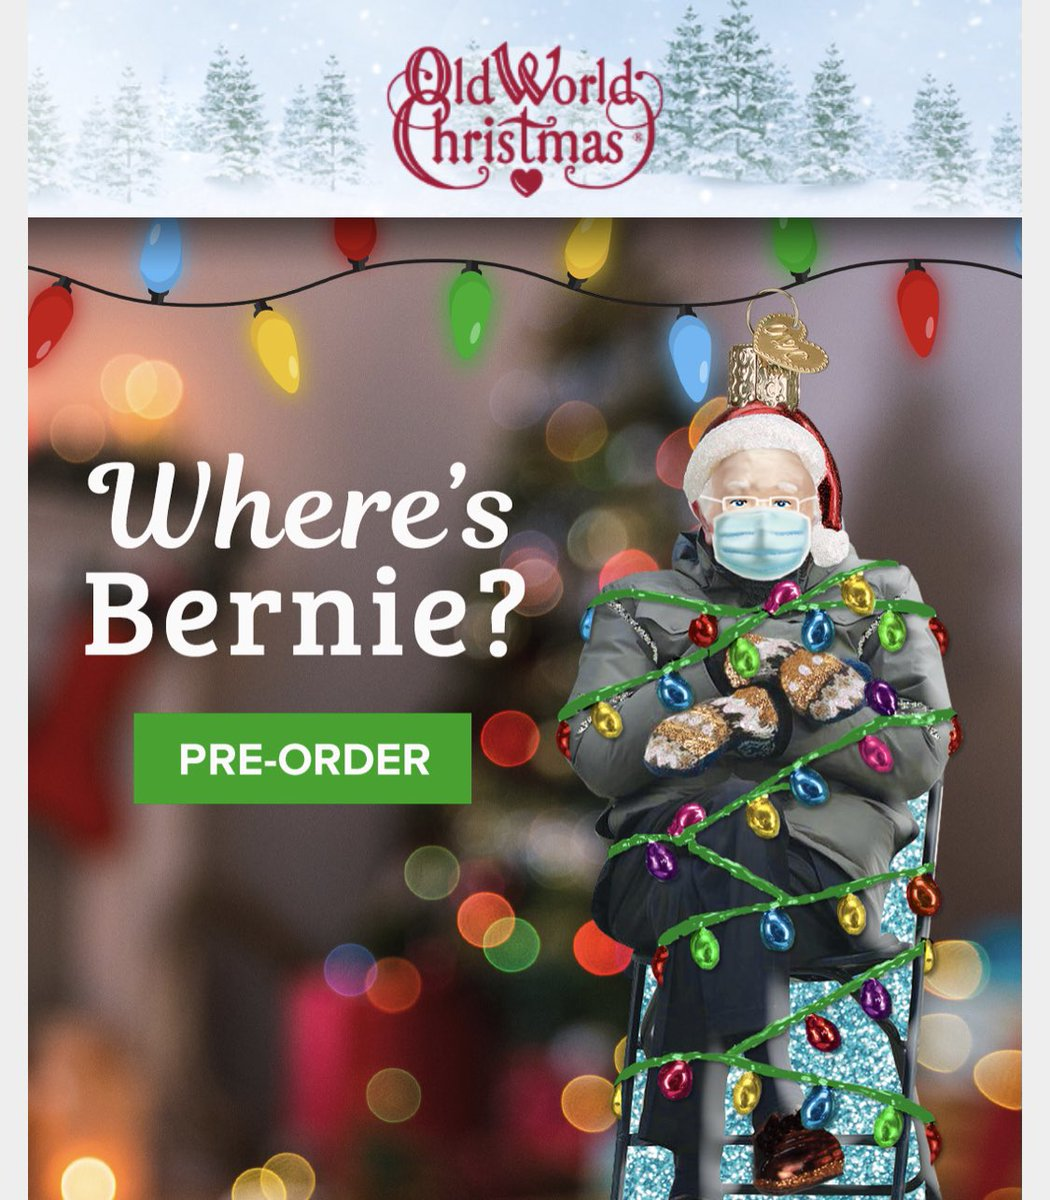 I want it but on the other hand if @OldWrldChrstmas is not donating at least a portion to charity like @BernieSanders did it seems wrong to buy it.  #berniemittens